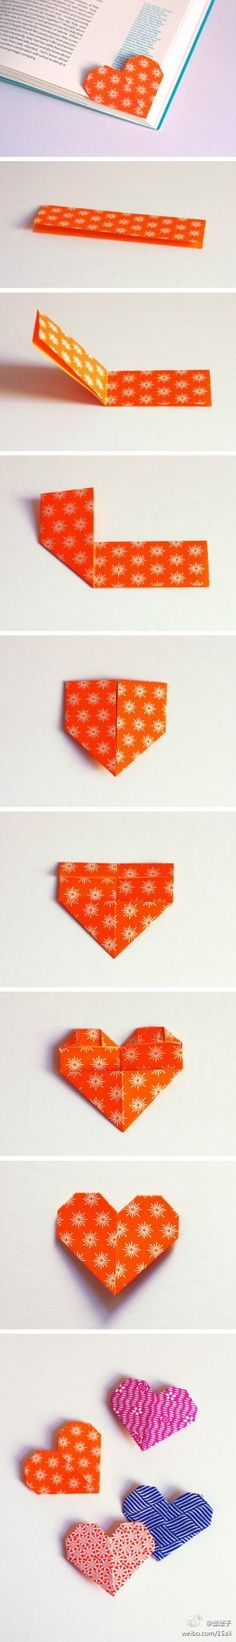 Heart-shaped corner page marker origami